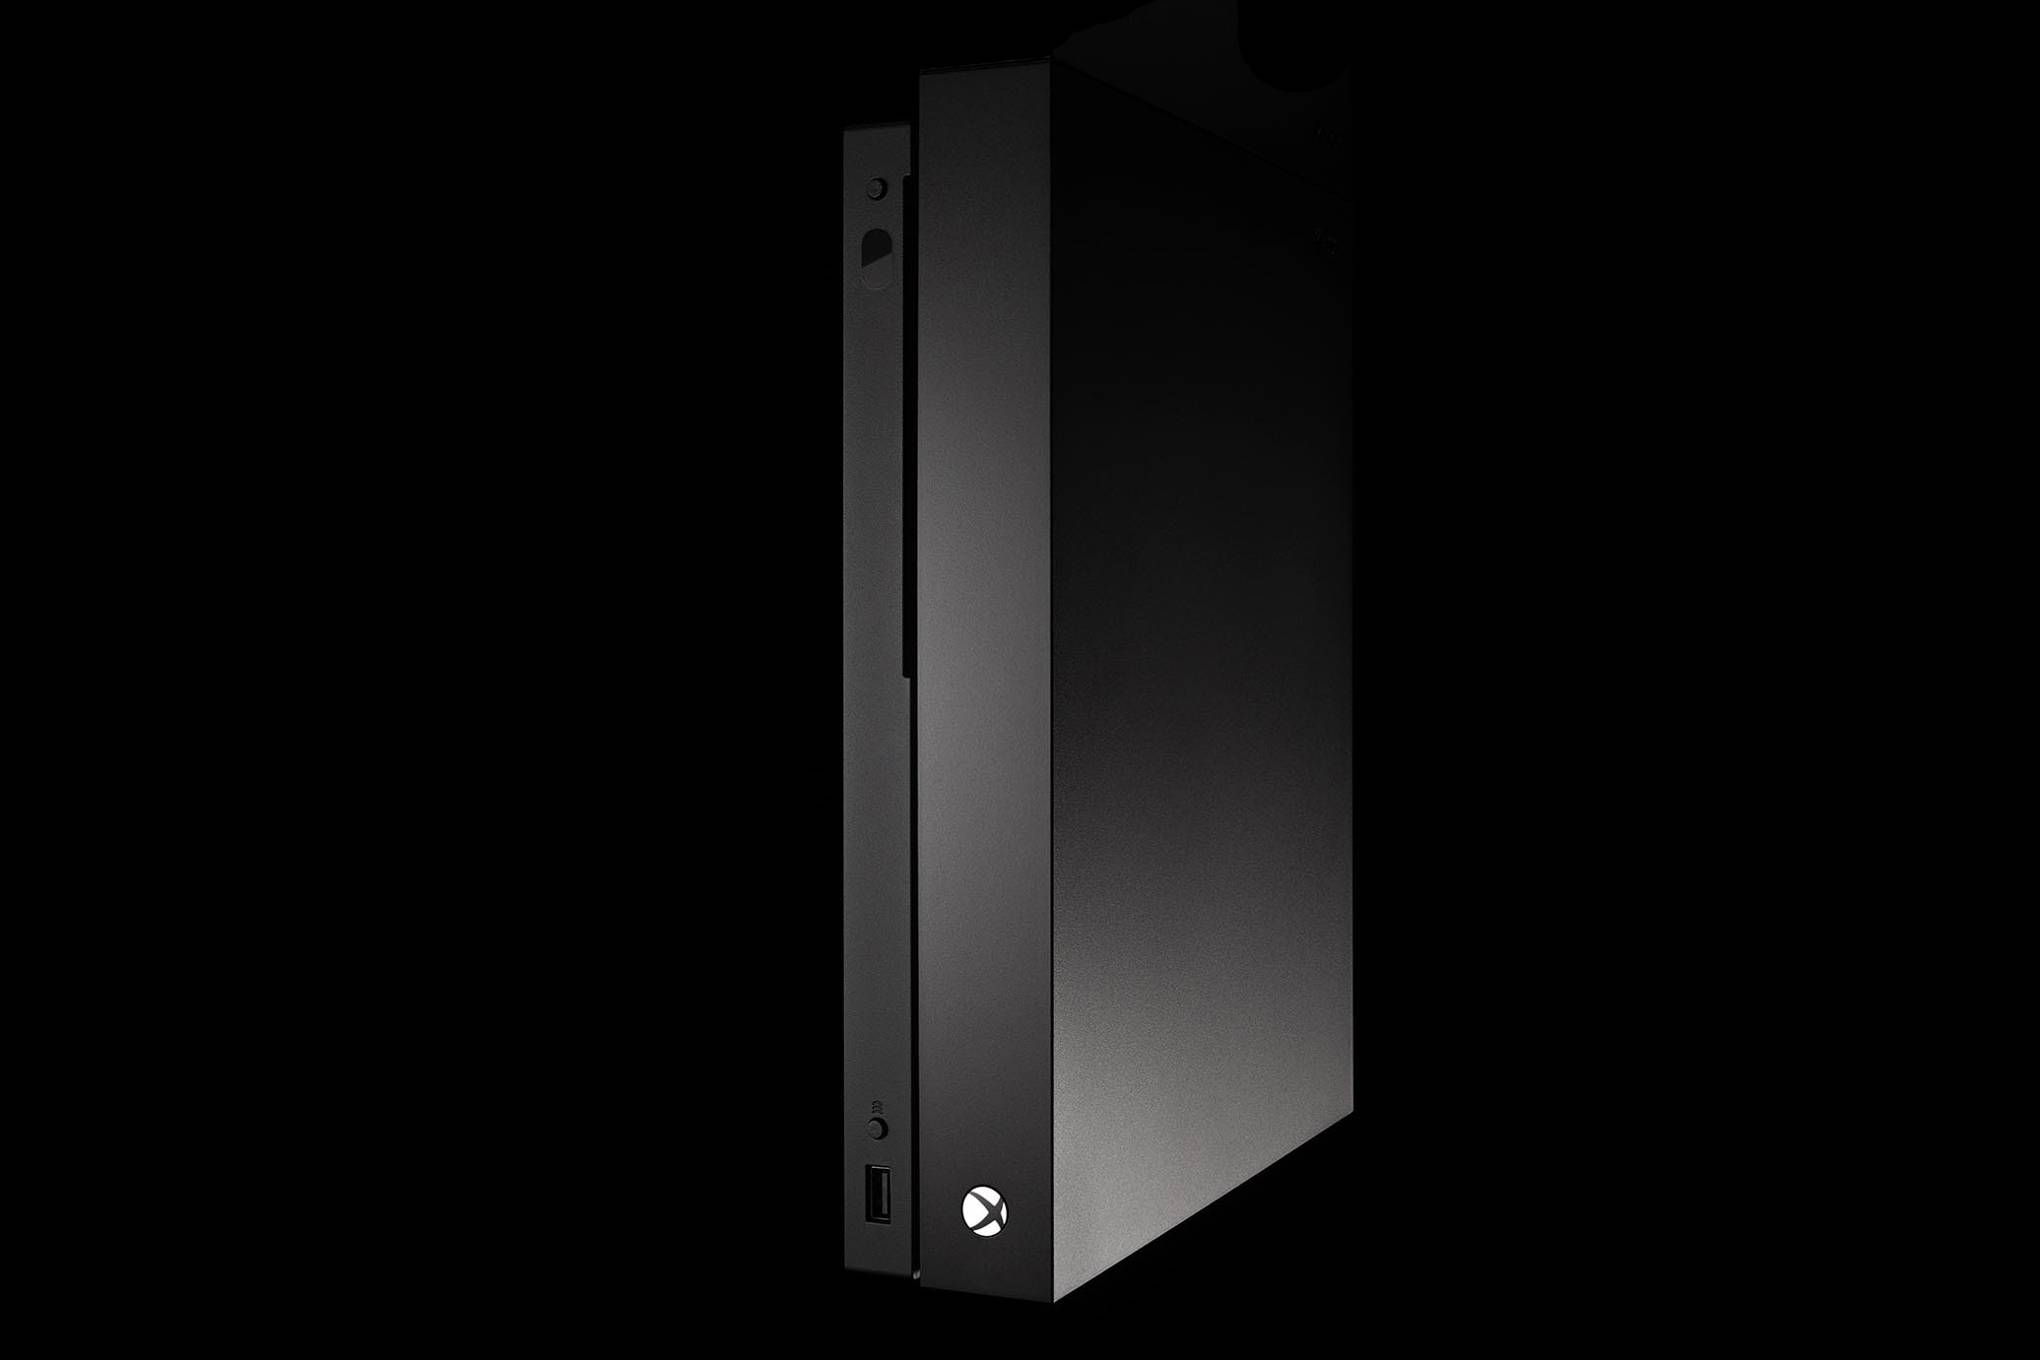 The inside story of the Xbox One X | WIRED UK